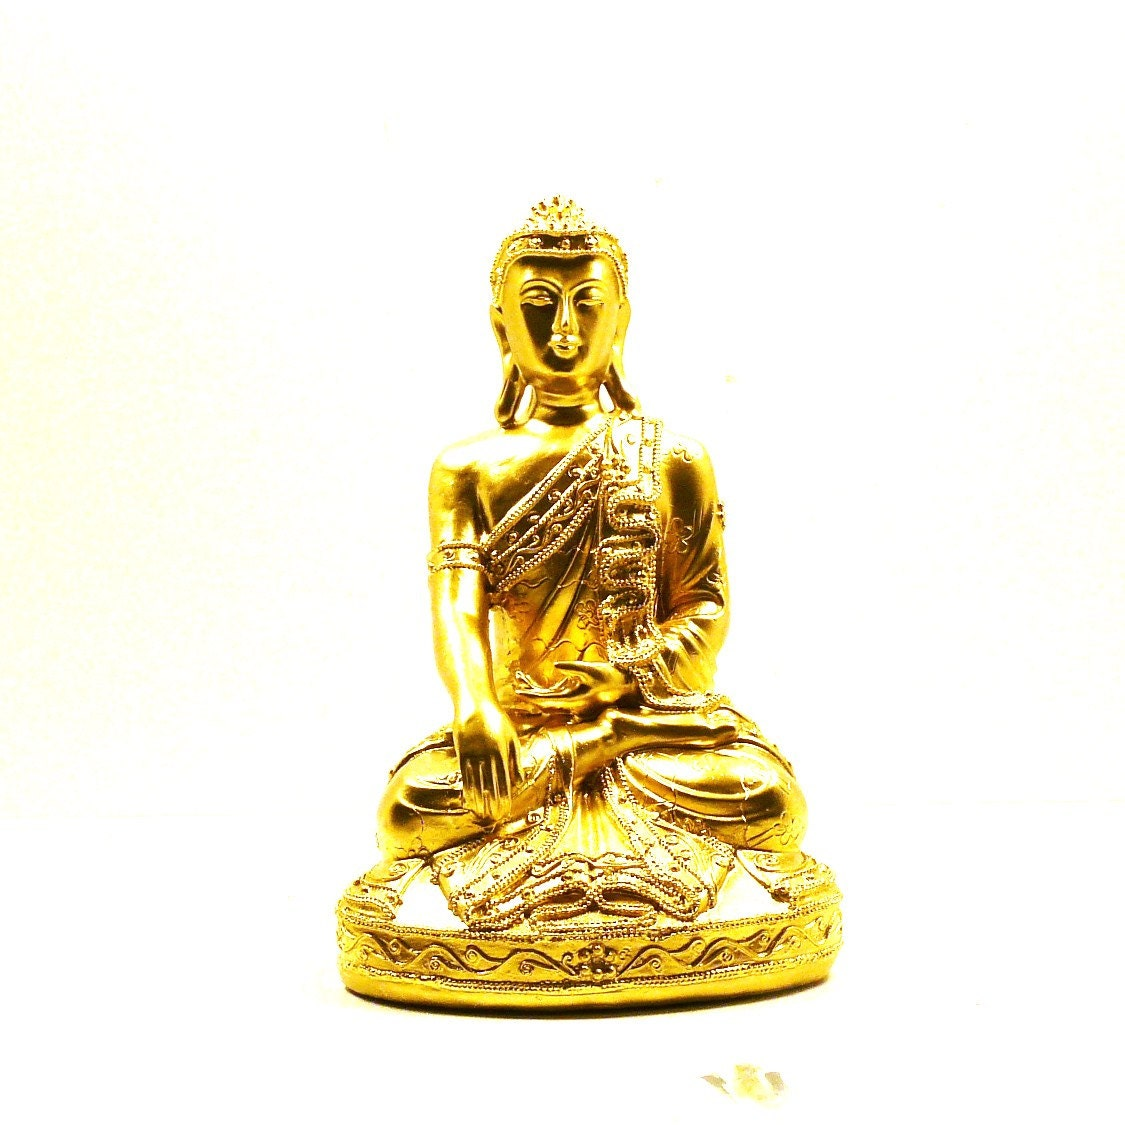 Buddhist home decor decorating ideas for Buddha decorations for the home uk